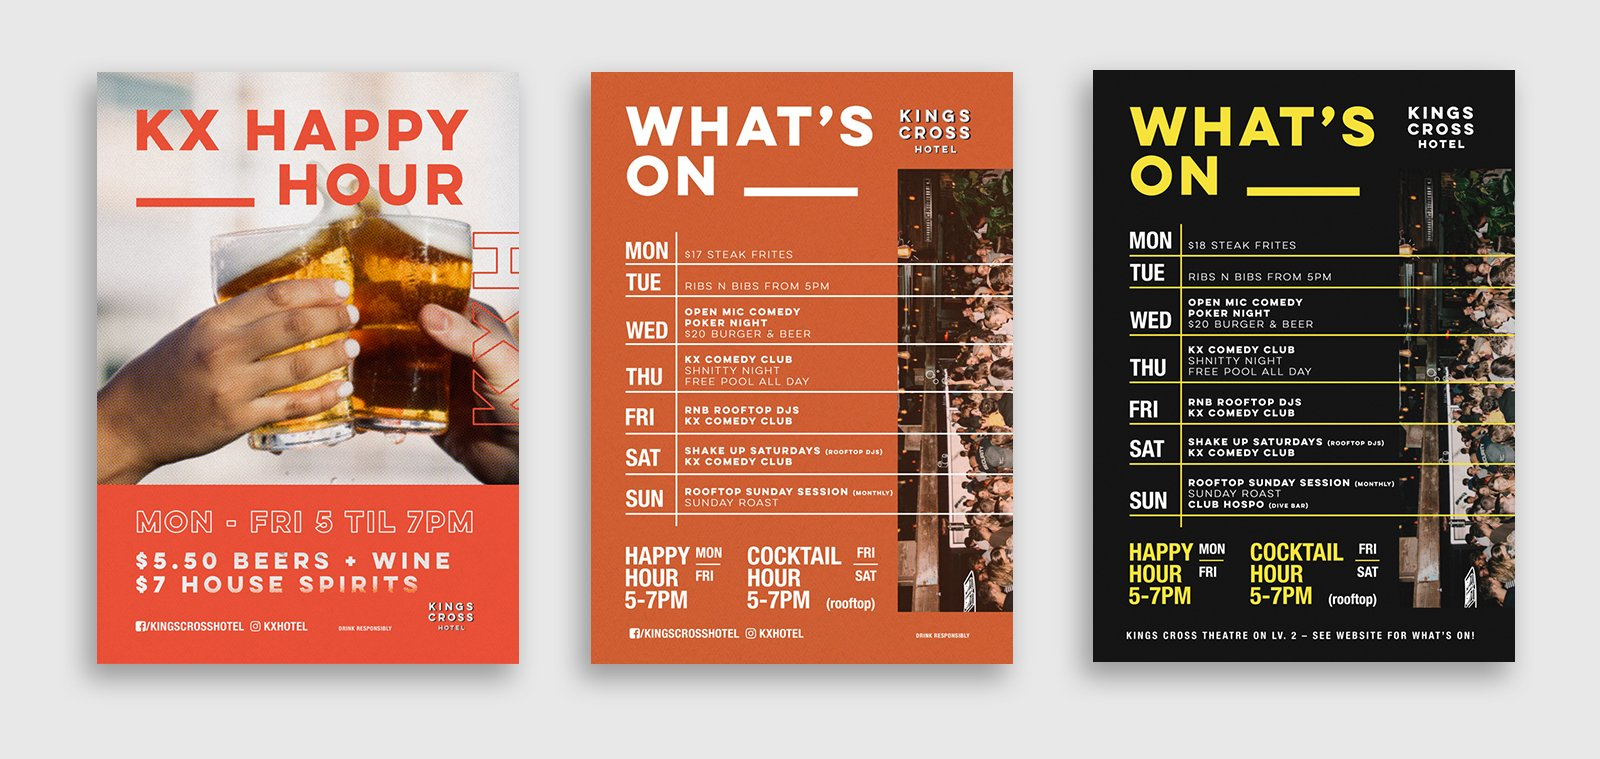 three poster designs advertising happy hour and what's on at the kings cross hotel